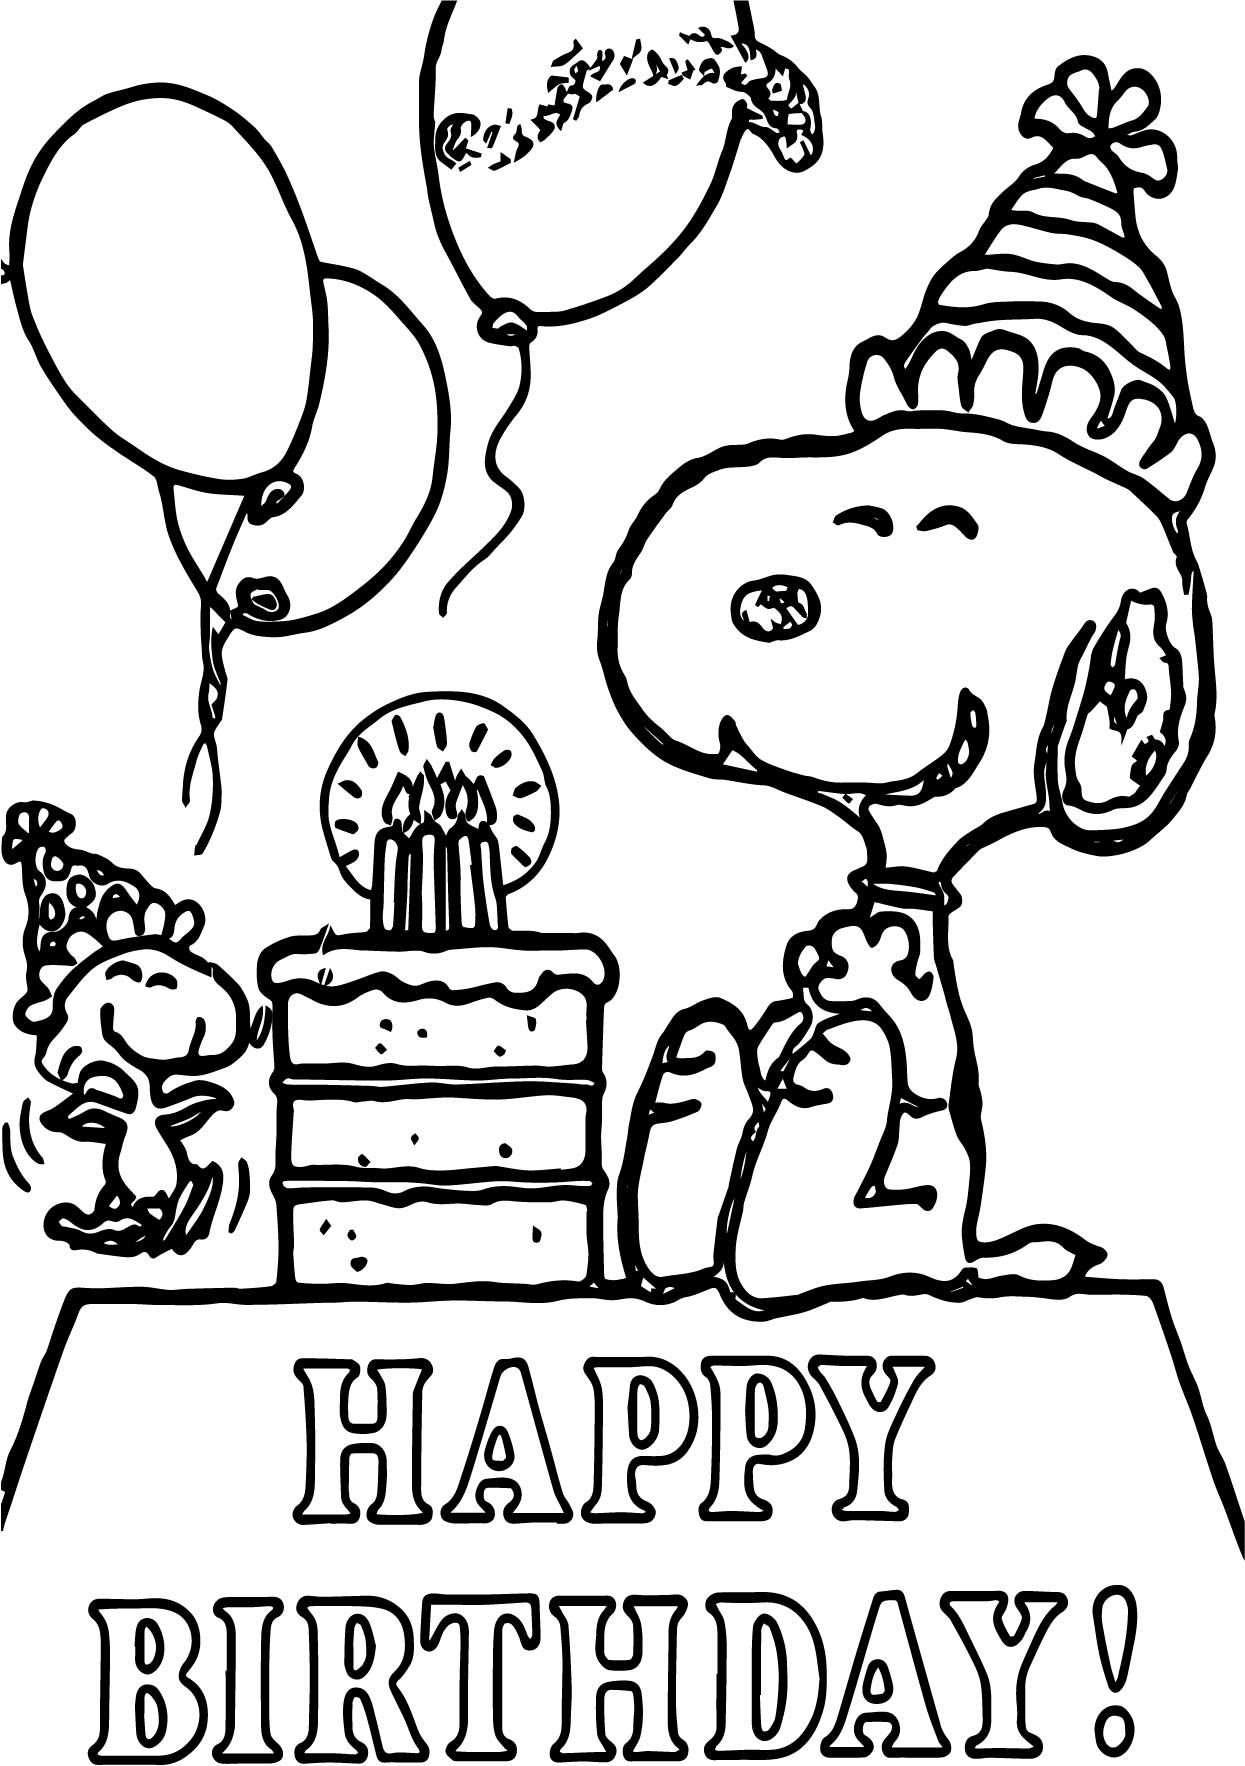 Snoopy Happy Birthday Quote Coloring Page In 2020 Happy Birthday Coloring Pages Birthday Coloring Pages Snoopy Coloring Pages